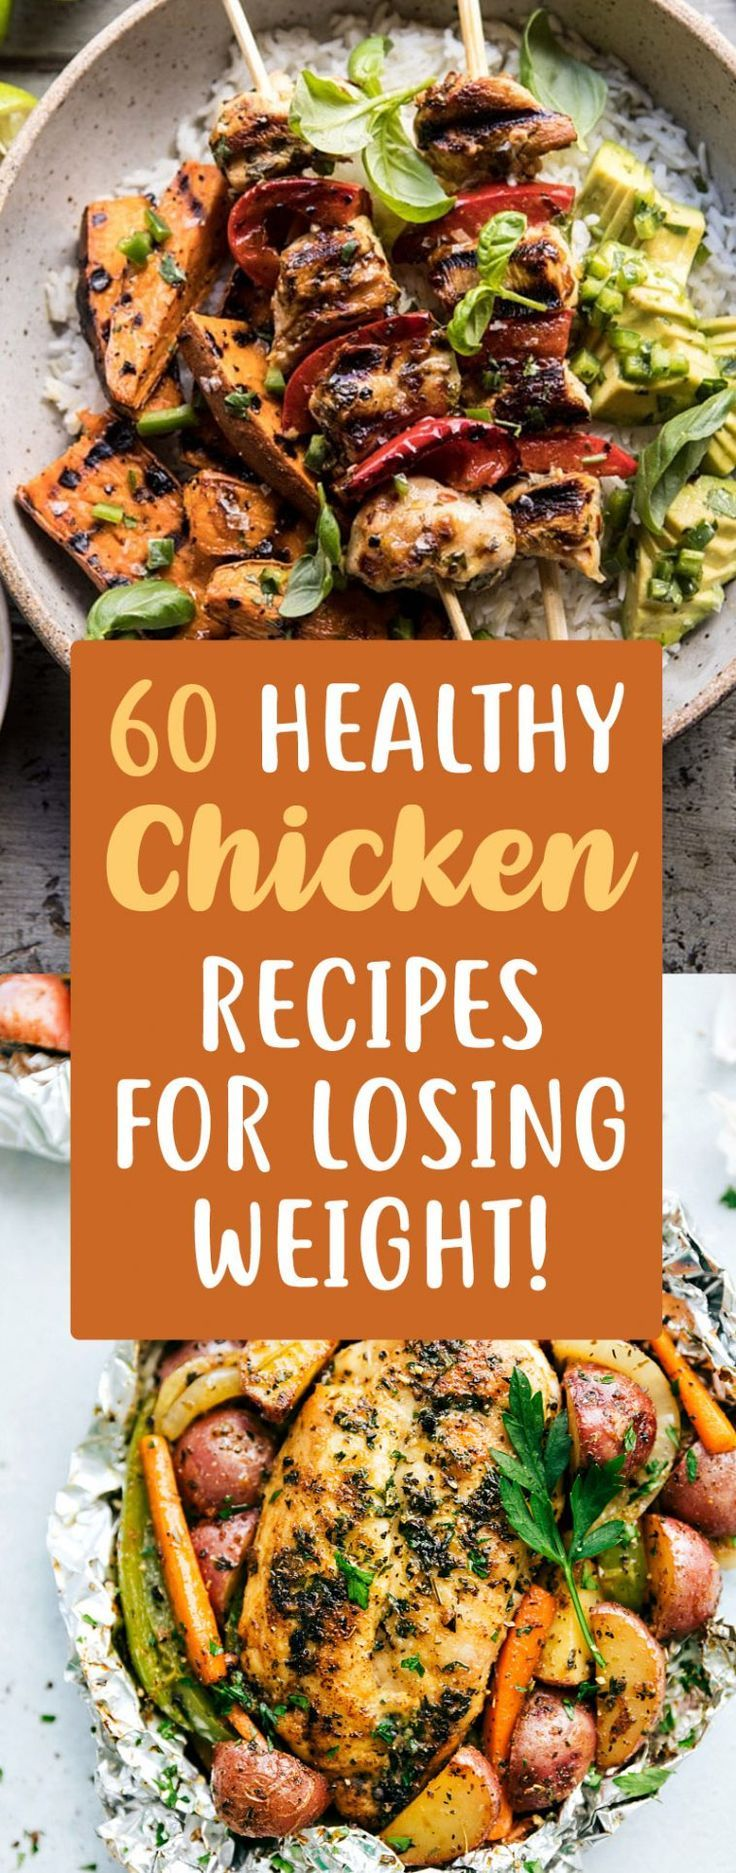 60 Insanely Delicious Chicken Recipes That Can Help You Lose Weight! - Trimmedan...   - Trying 2019...